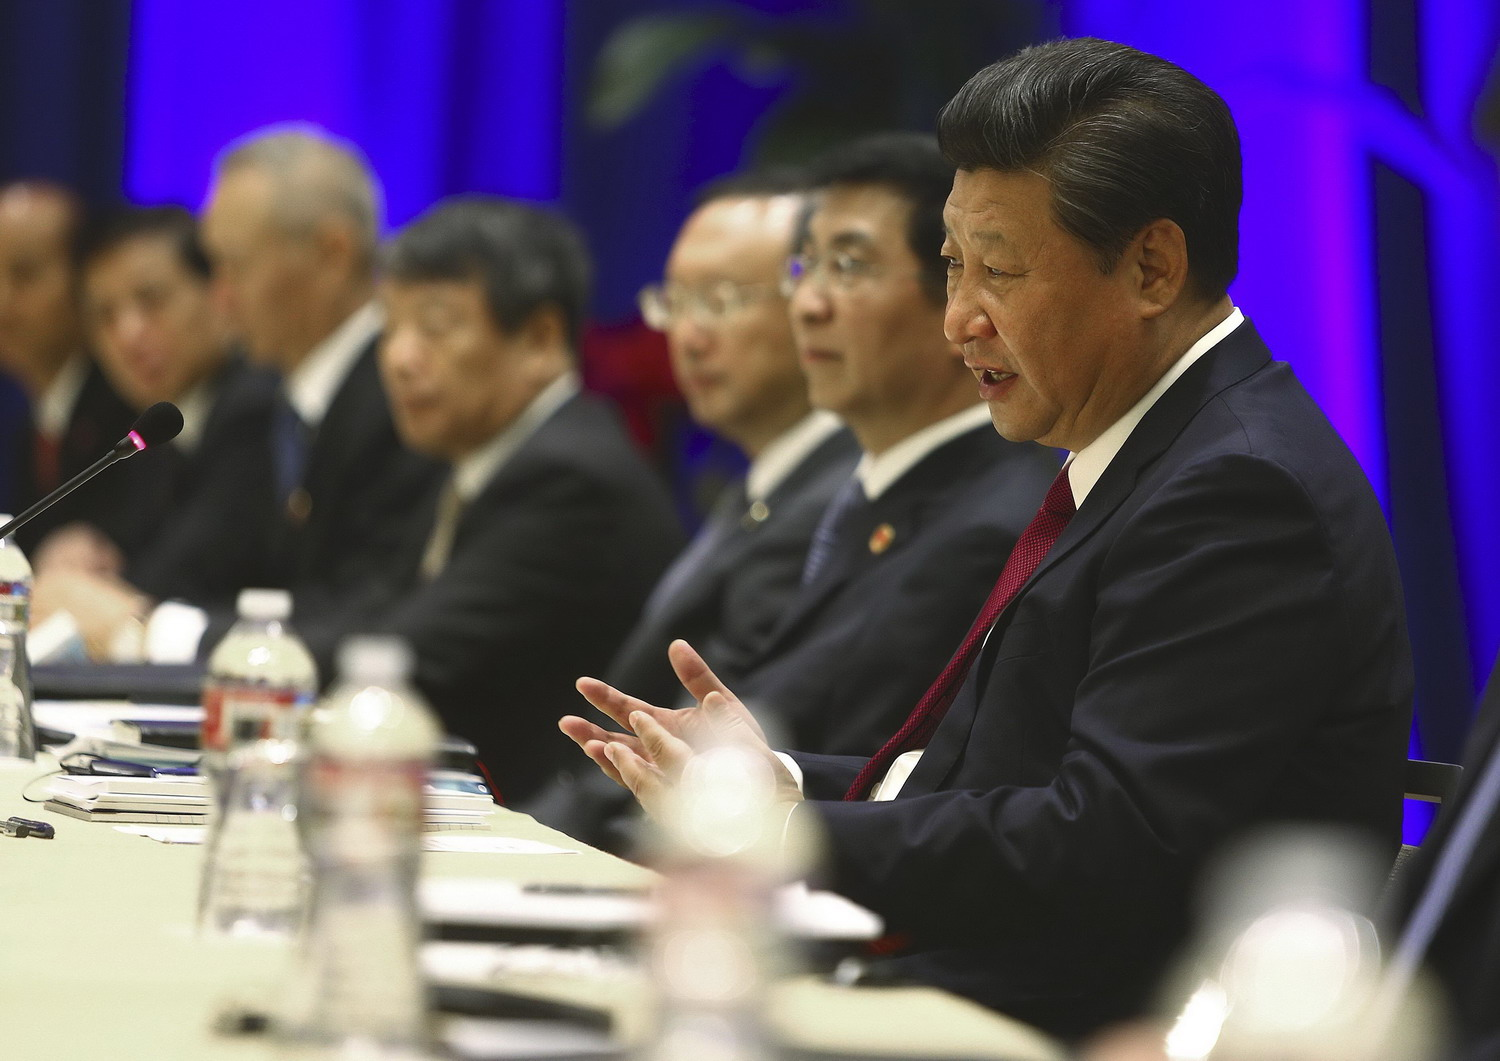 On U.S. visit, China's president seeks to reassure on trade, security